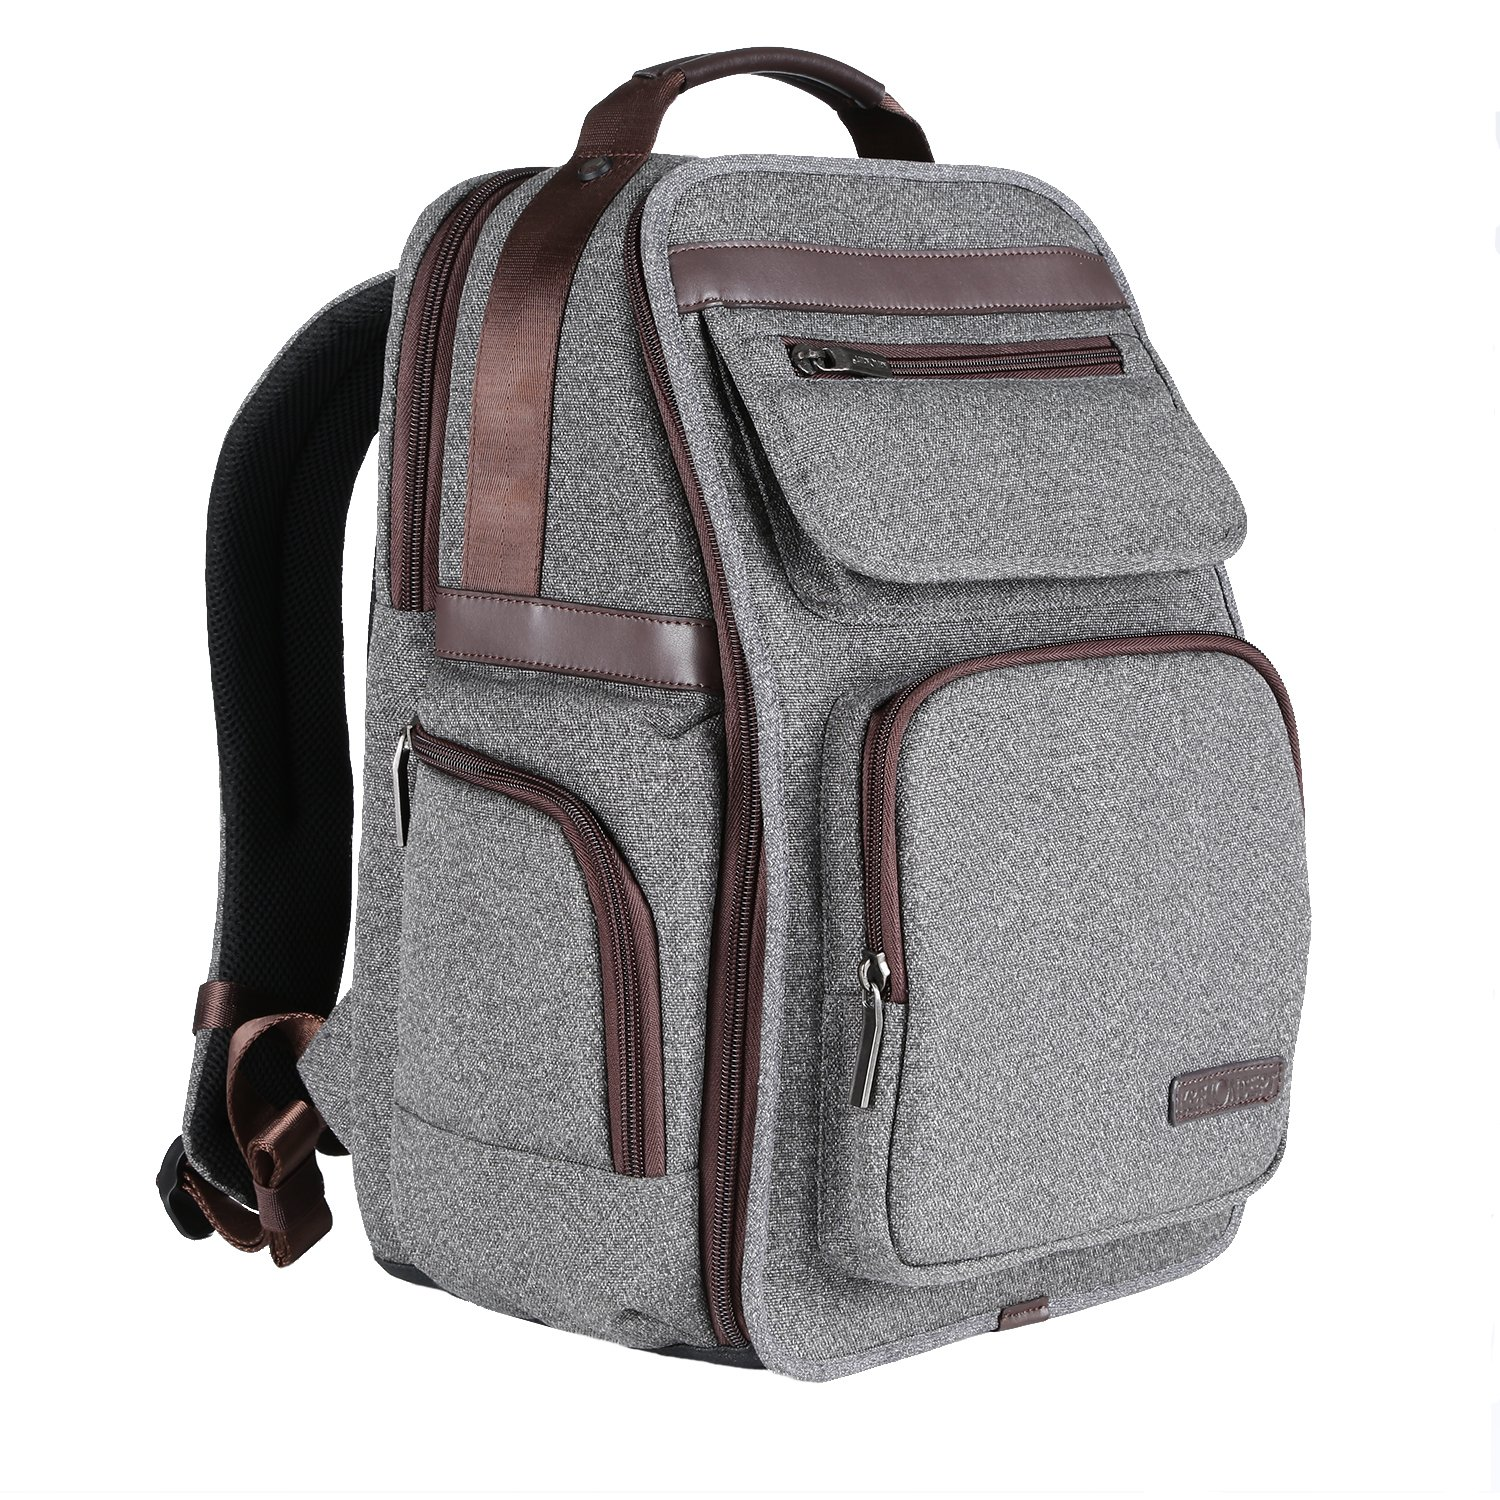 K/&F Concept Waterproof Multi-function DSLR Camera Backpack Nylon Grey Large Size with 14 Gadget Laptop for Canon Nikon Sony